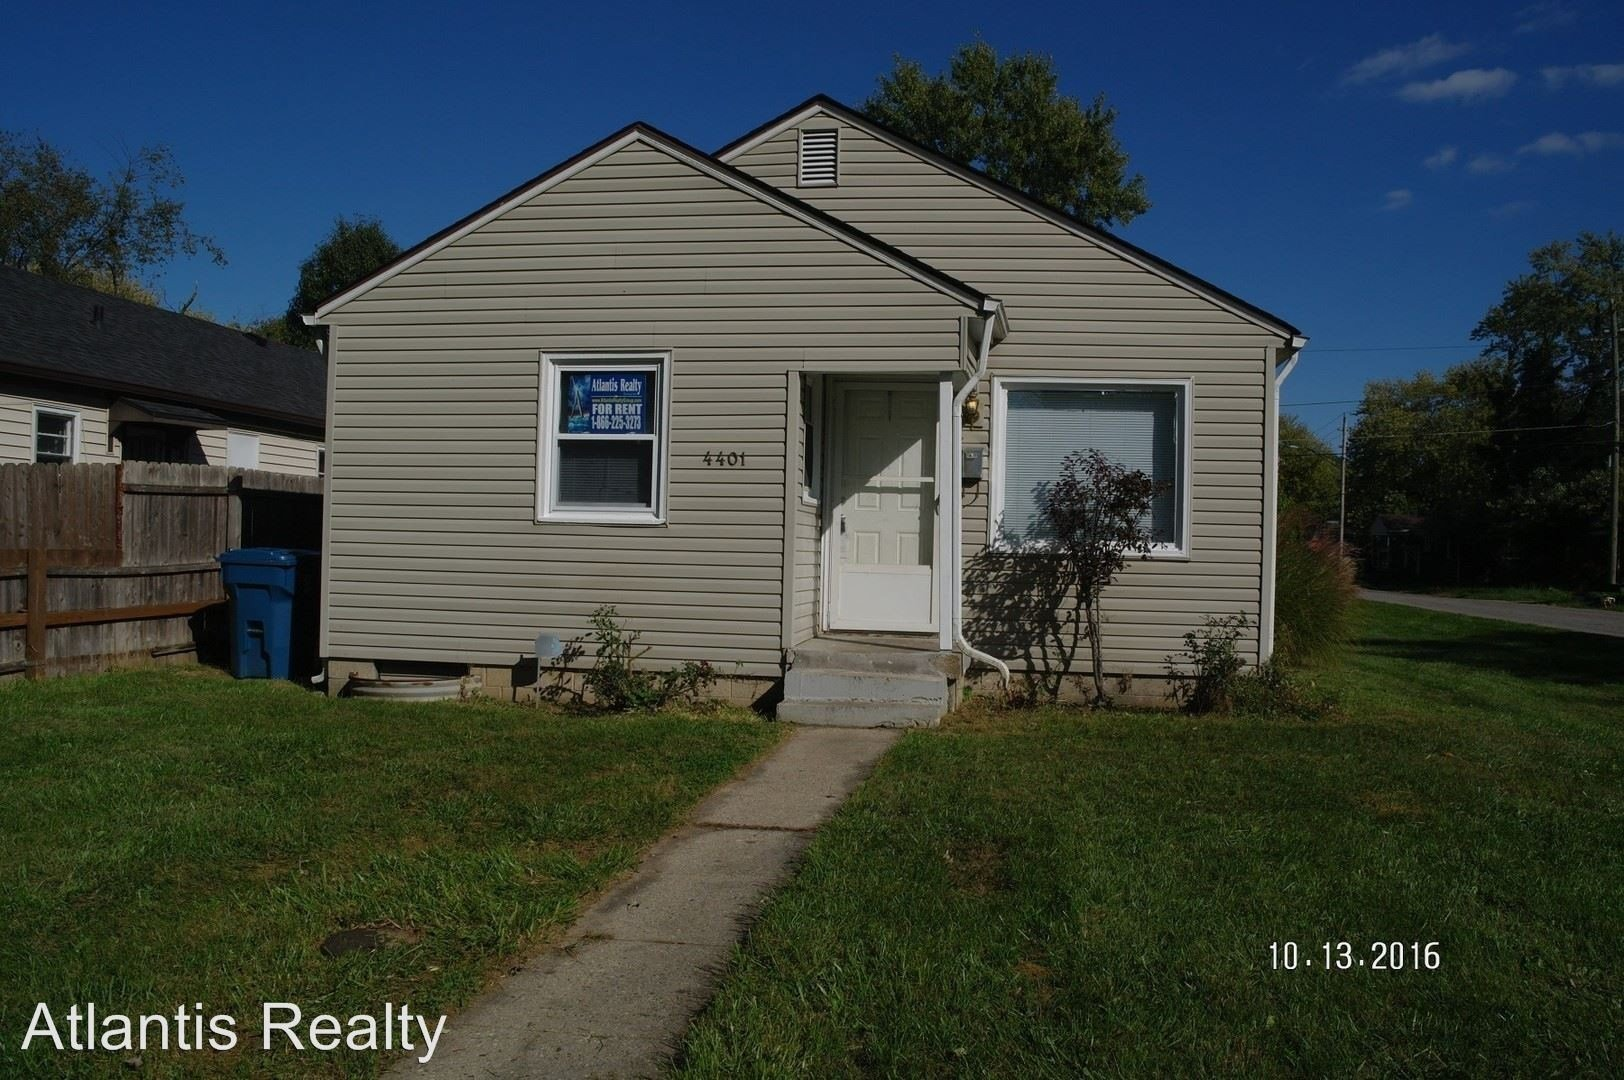 Best 4401 Norwaldo Ave Indianapolis In 46205 2 Bedroom House For Rent For 650 Month Zumper With Pictures